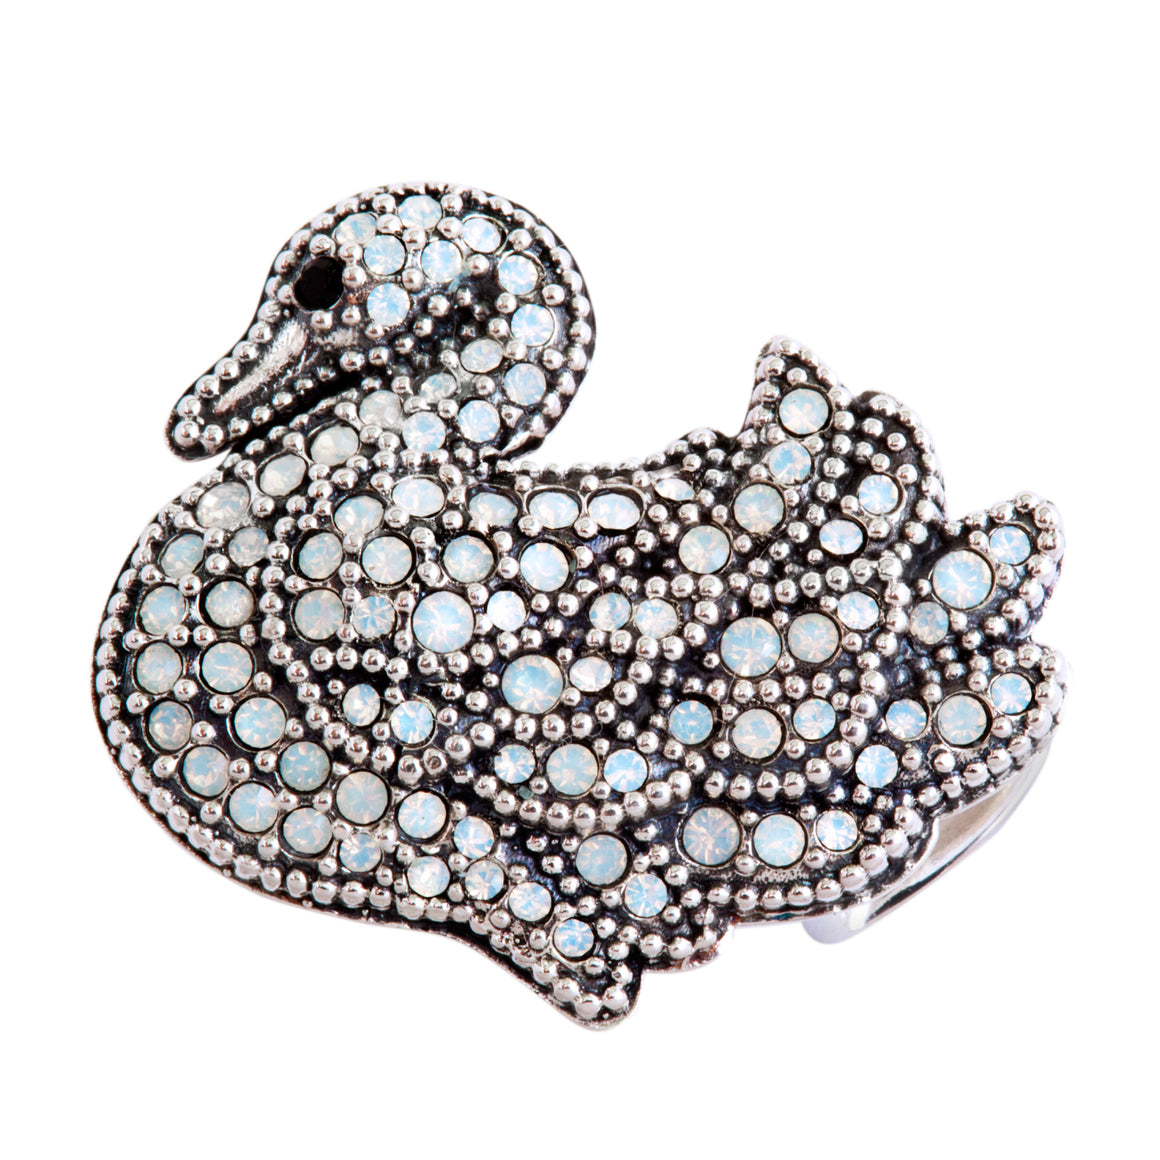 Swan Song Slide Charm from Bonn Bons by Lori Bonn (214302SWWO)